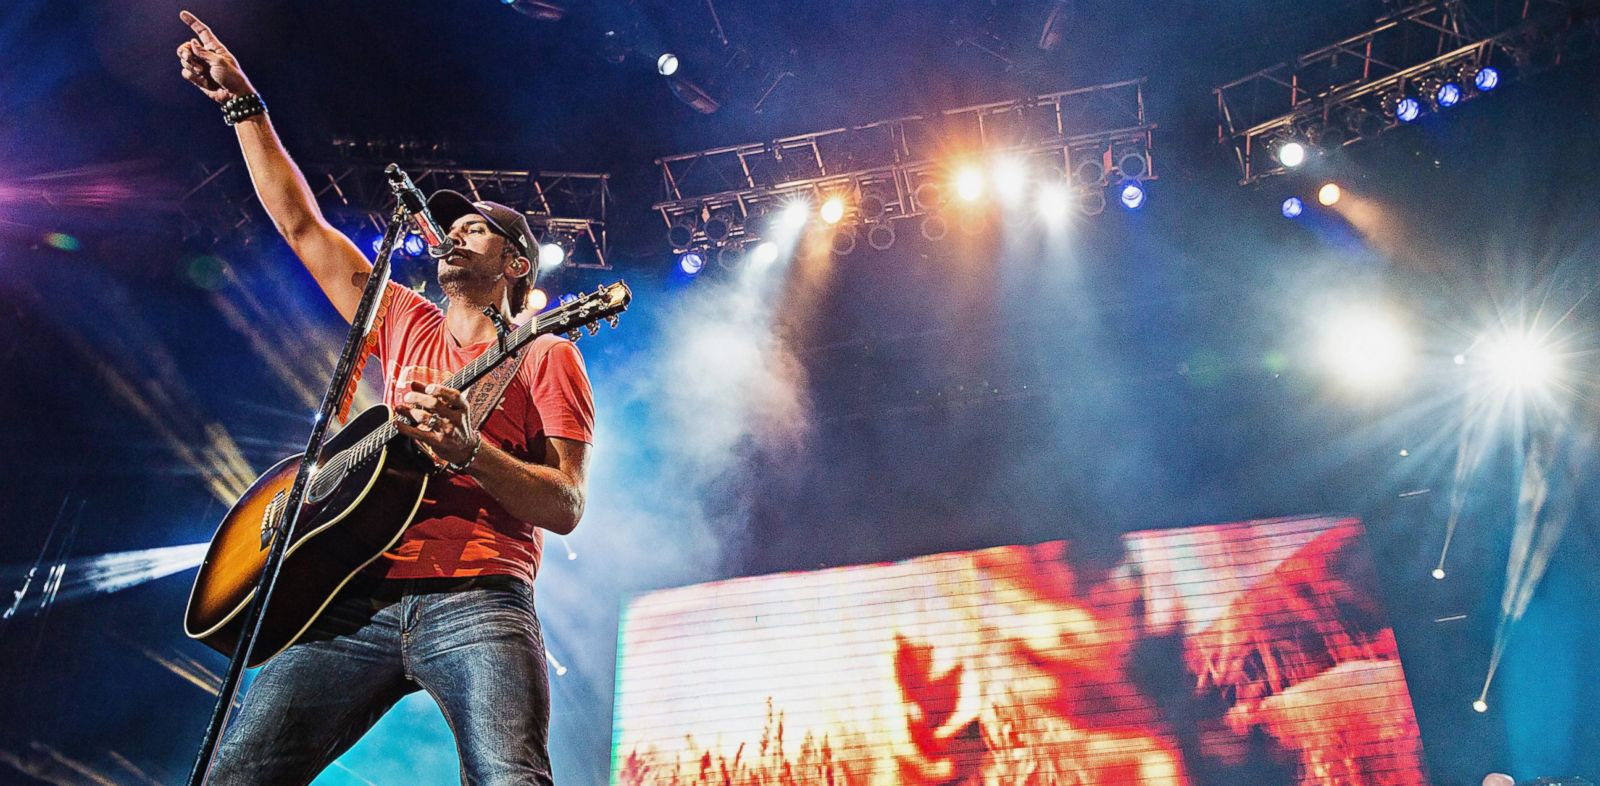 PHOTO: Luke Bryan performs at the Gorge Amphitheater during the Watershed Music Festival, Aug. 2, 2013, in George, Wash.